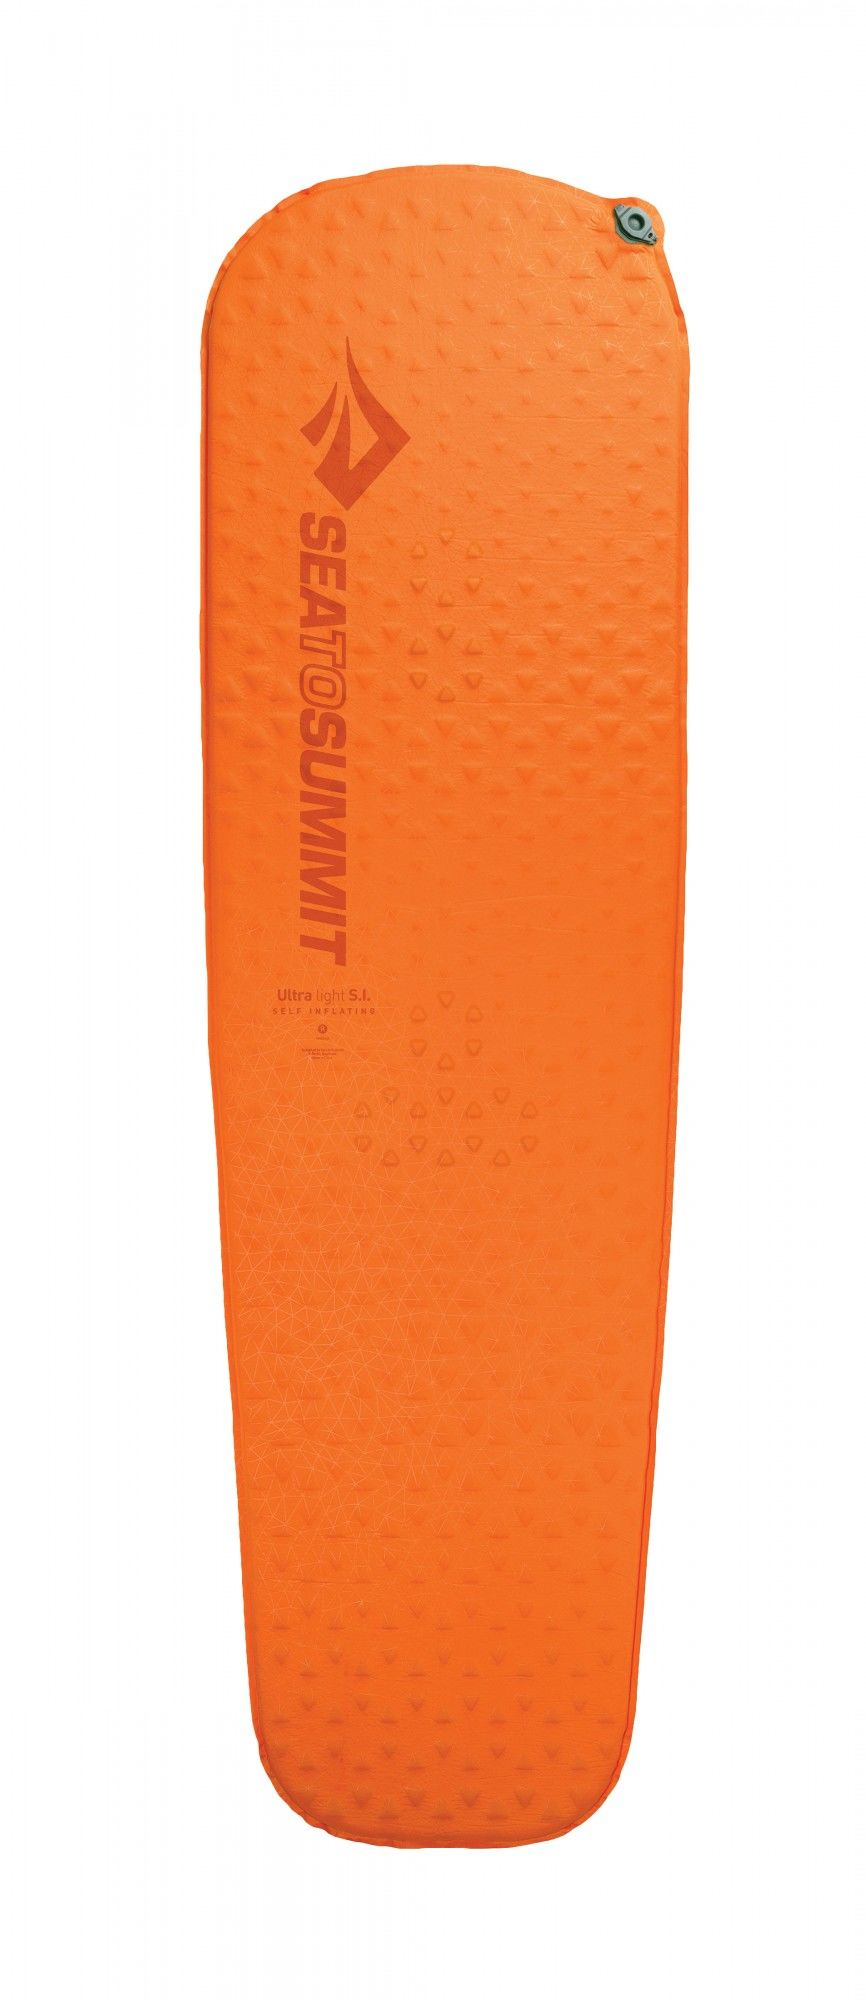 Sea to Summit Ultralight Self Inflating Mat Regular Orange, 183 cm -Farbe Orange